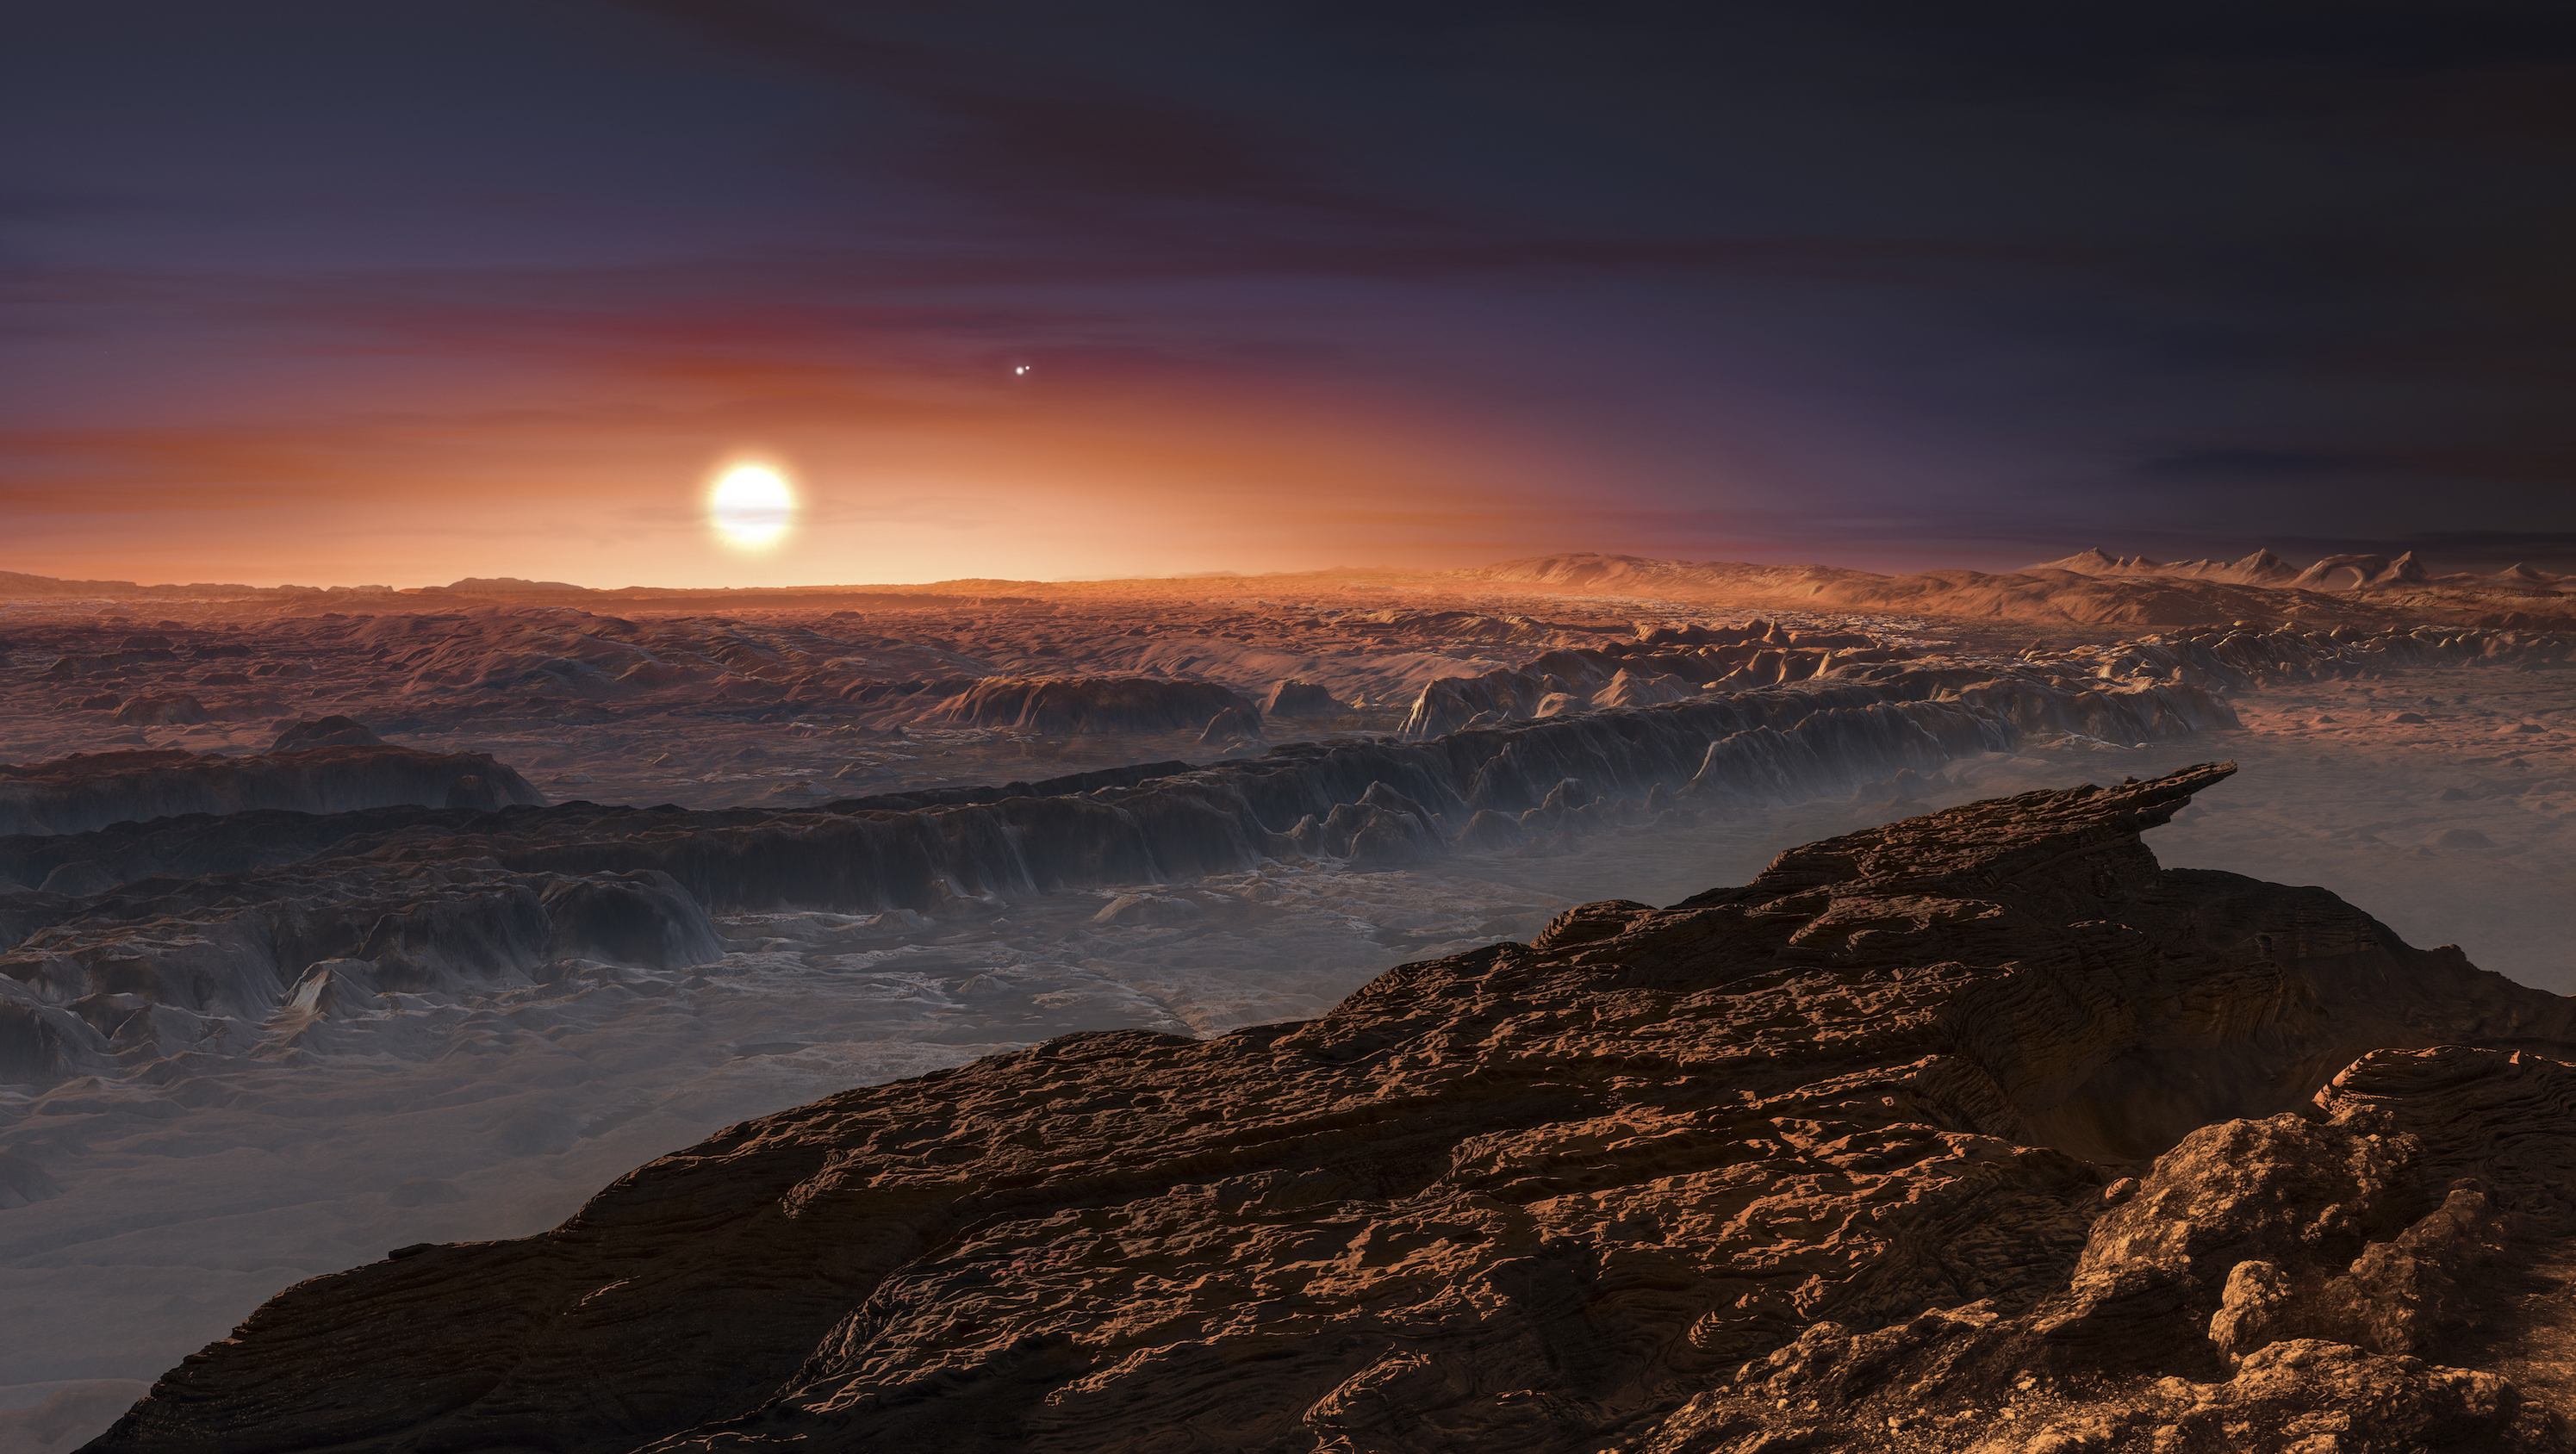 A view of the surface of the planet Proxima b orbiting the red dwarf star Proxima Centauri, the closest star to our Solar System, is seen in an undated artist's impression